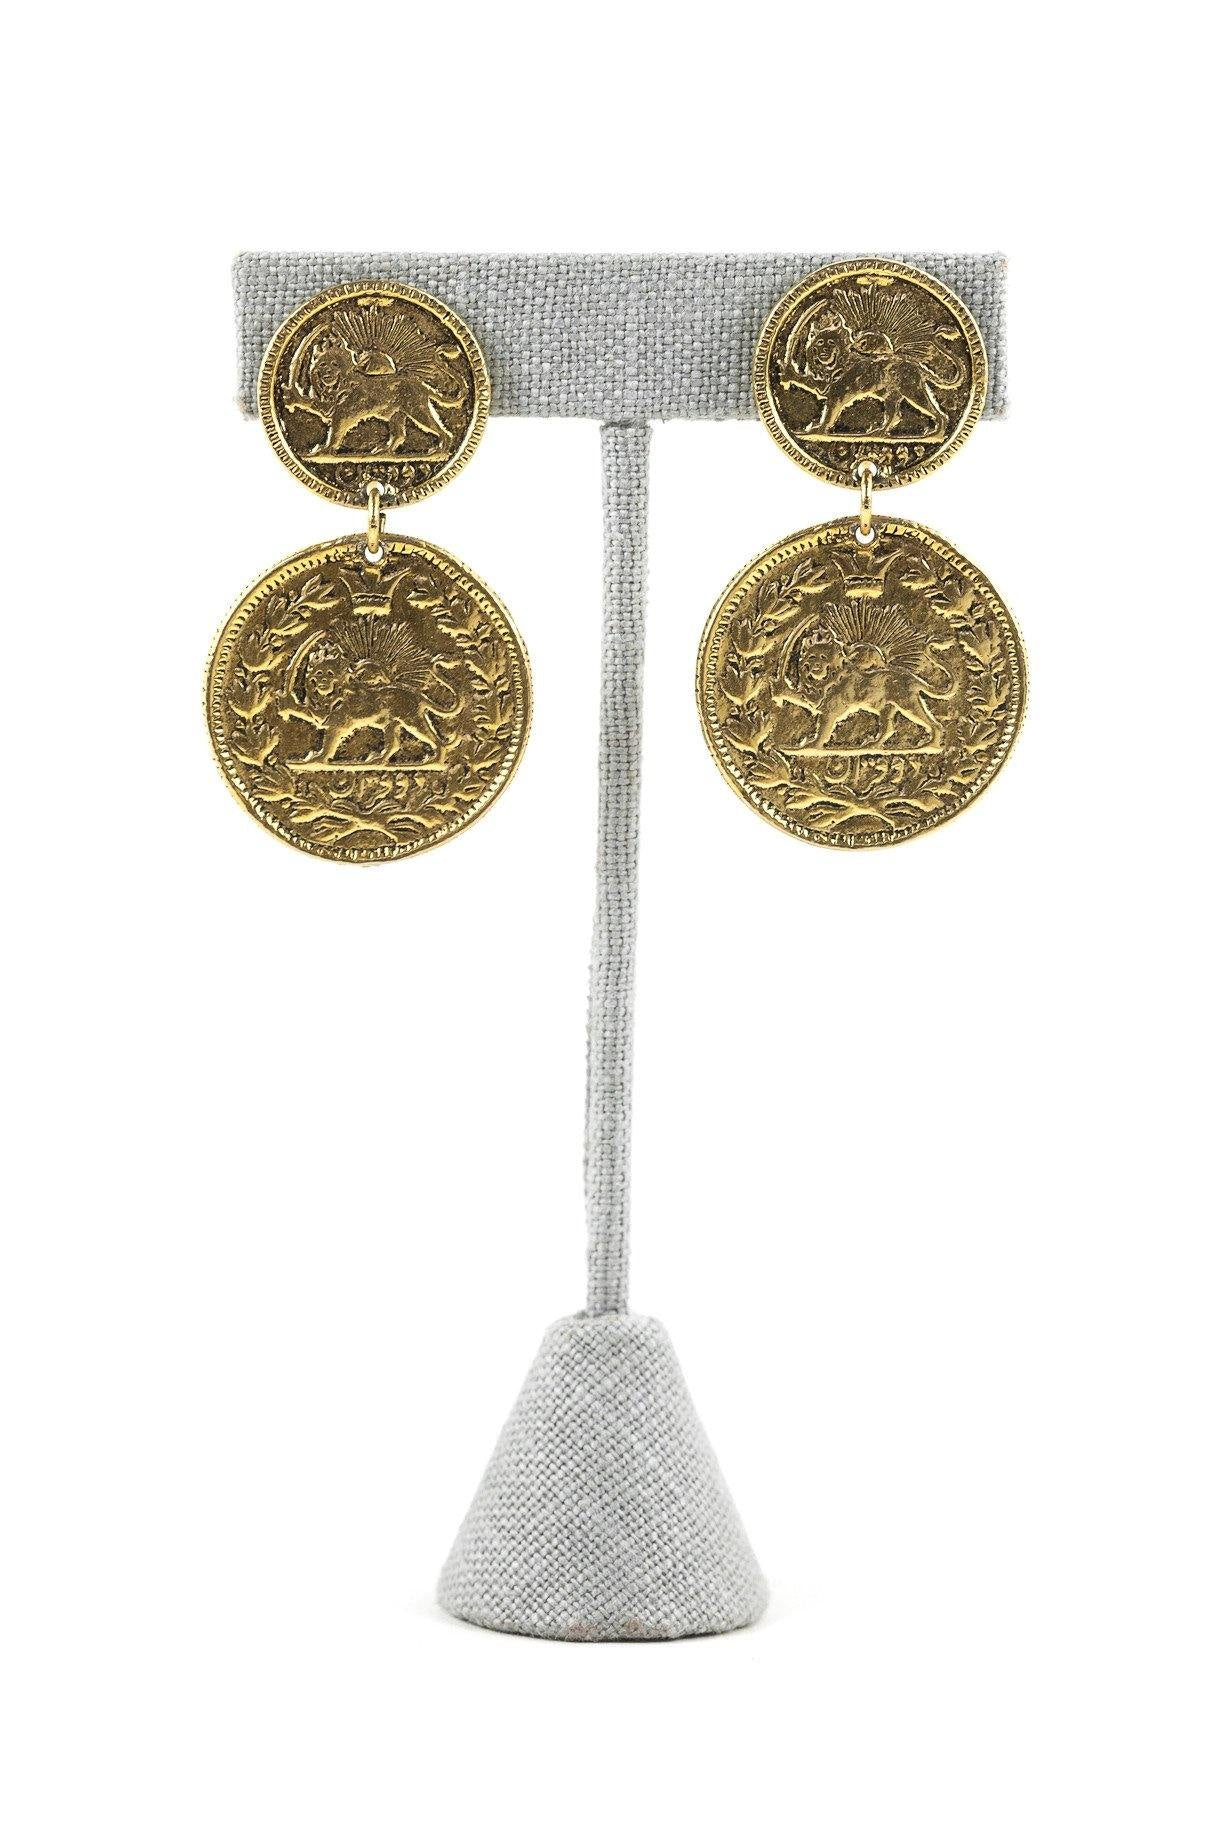 70's__Goldette__Statement Coin Clip-On Earrings